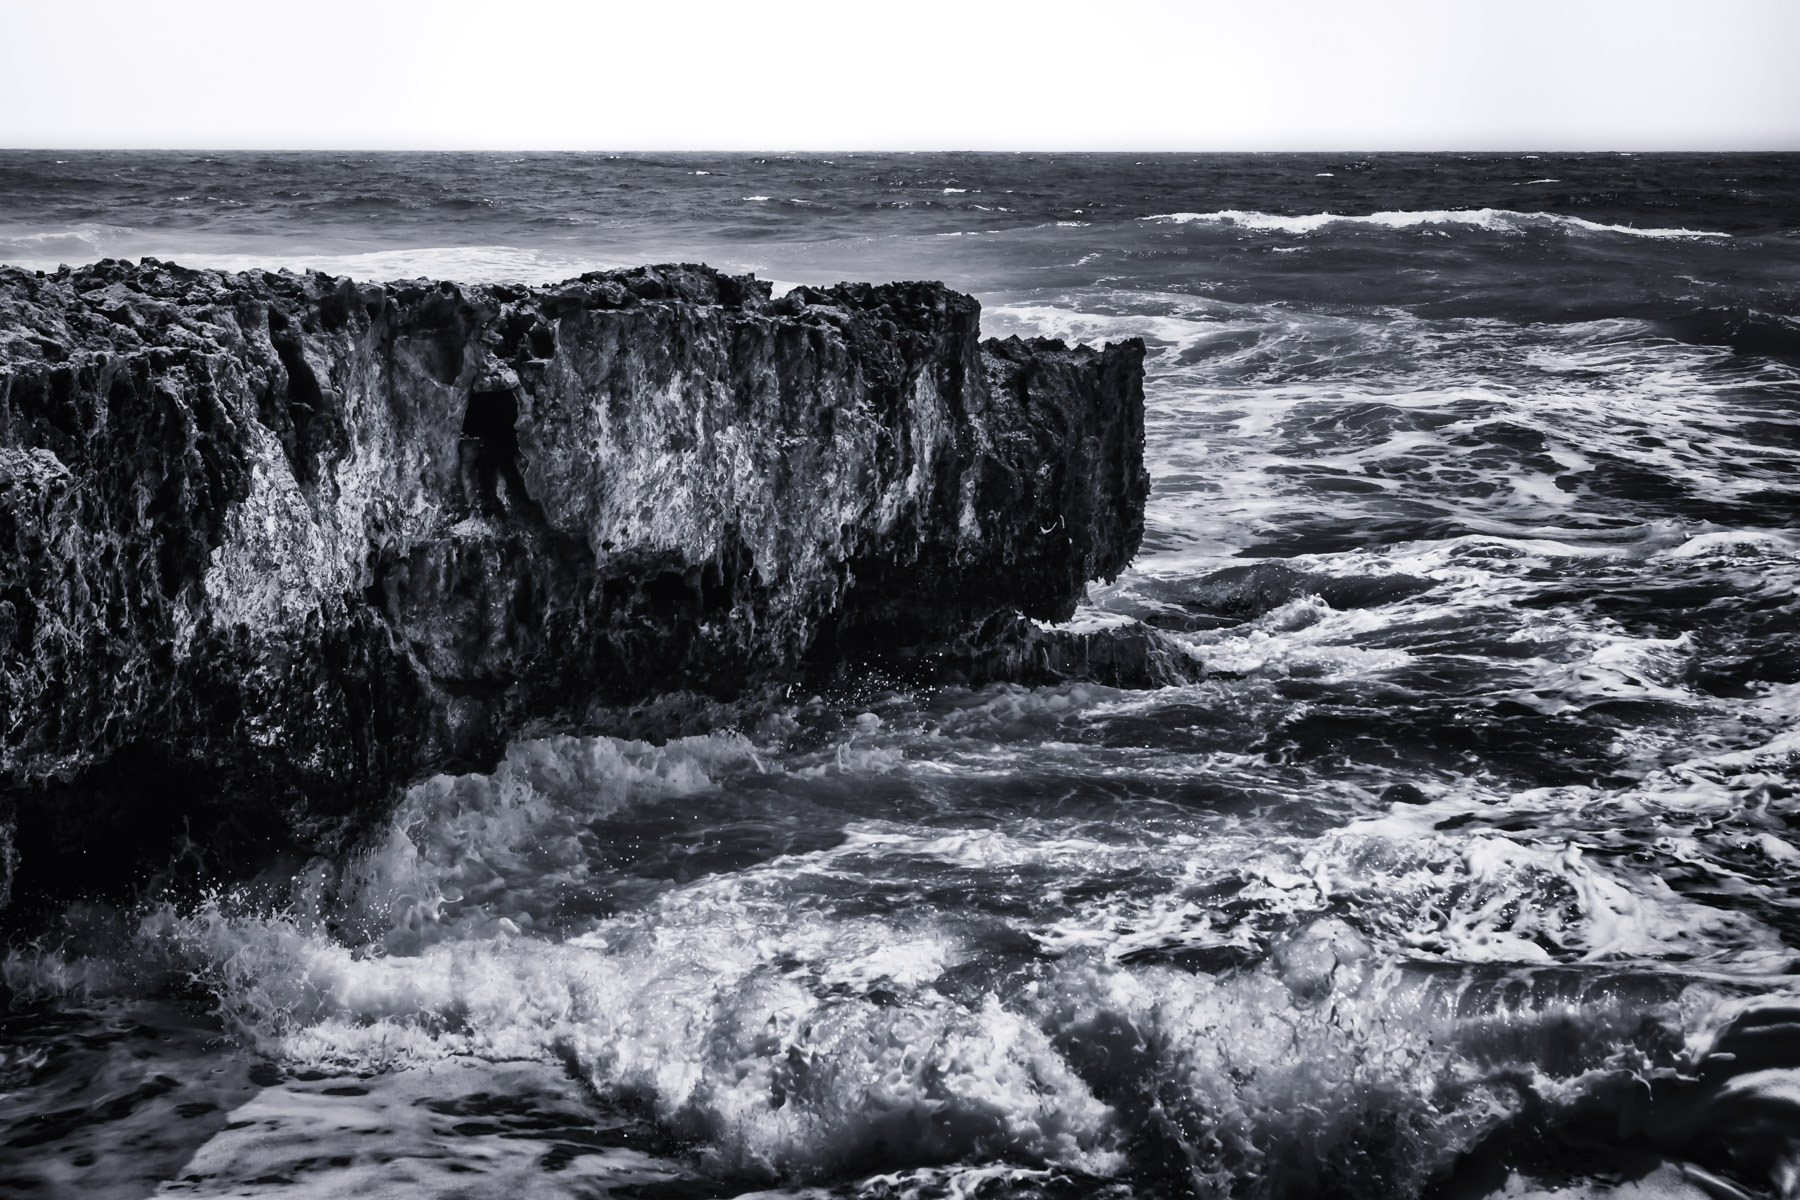 Waves crash upon the rocky shore at El Mirador on the southeast coast of Cozumel, Mexico.